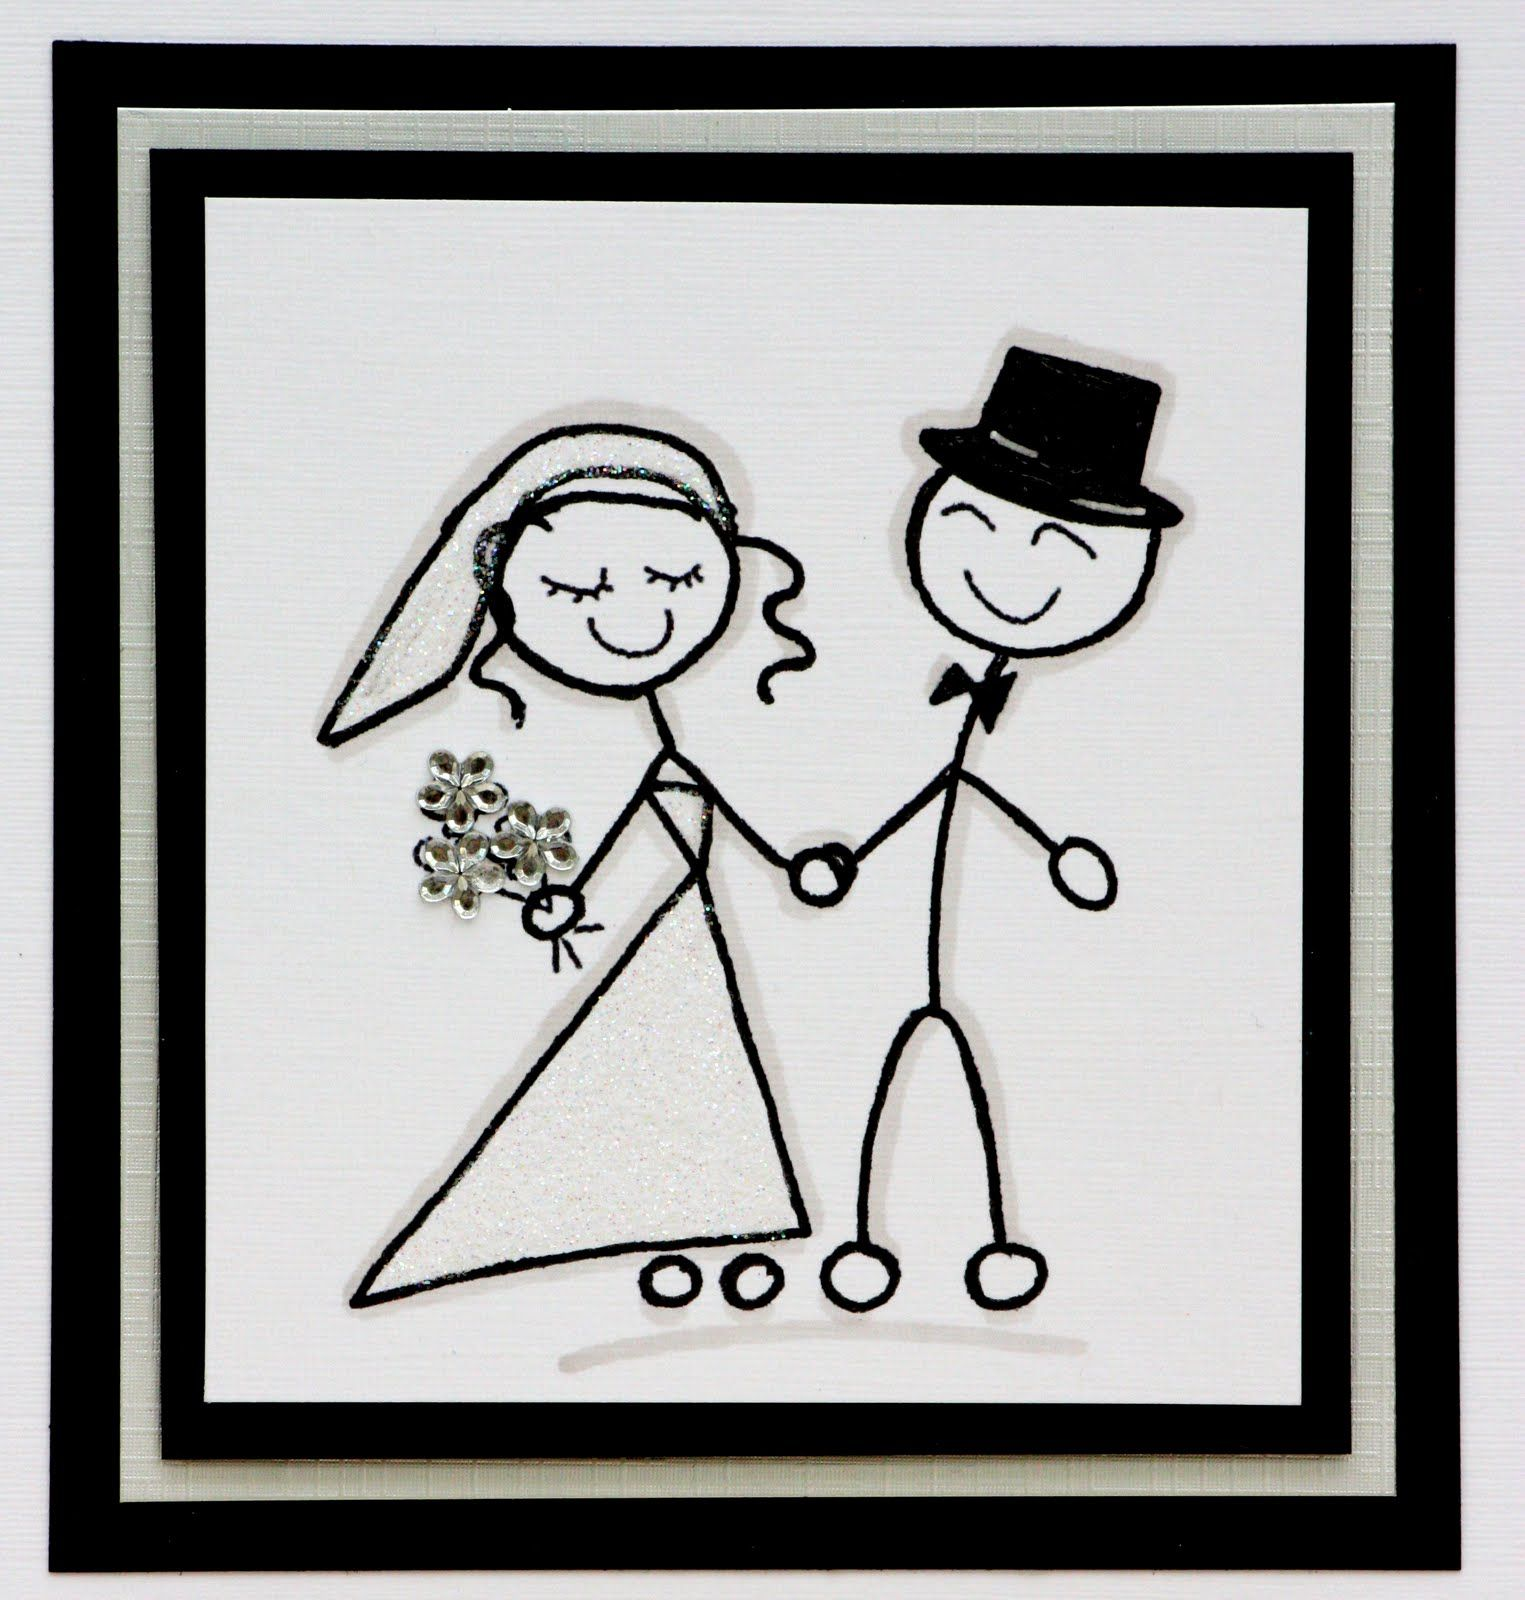 Stick Figure Bride And Groom - Google Search